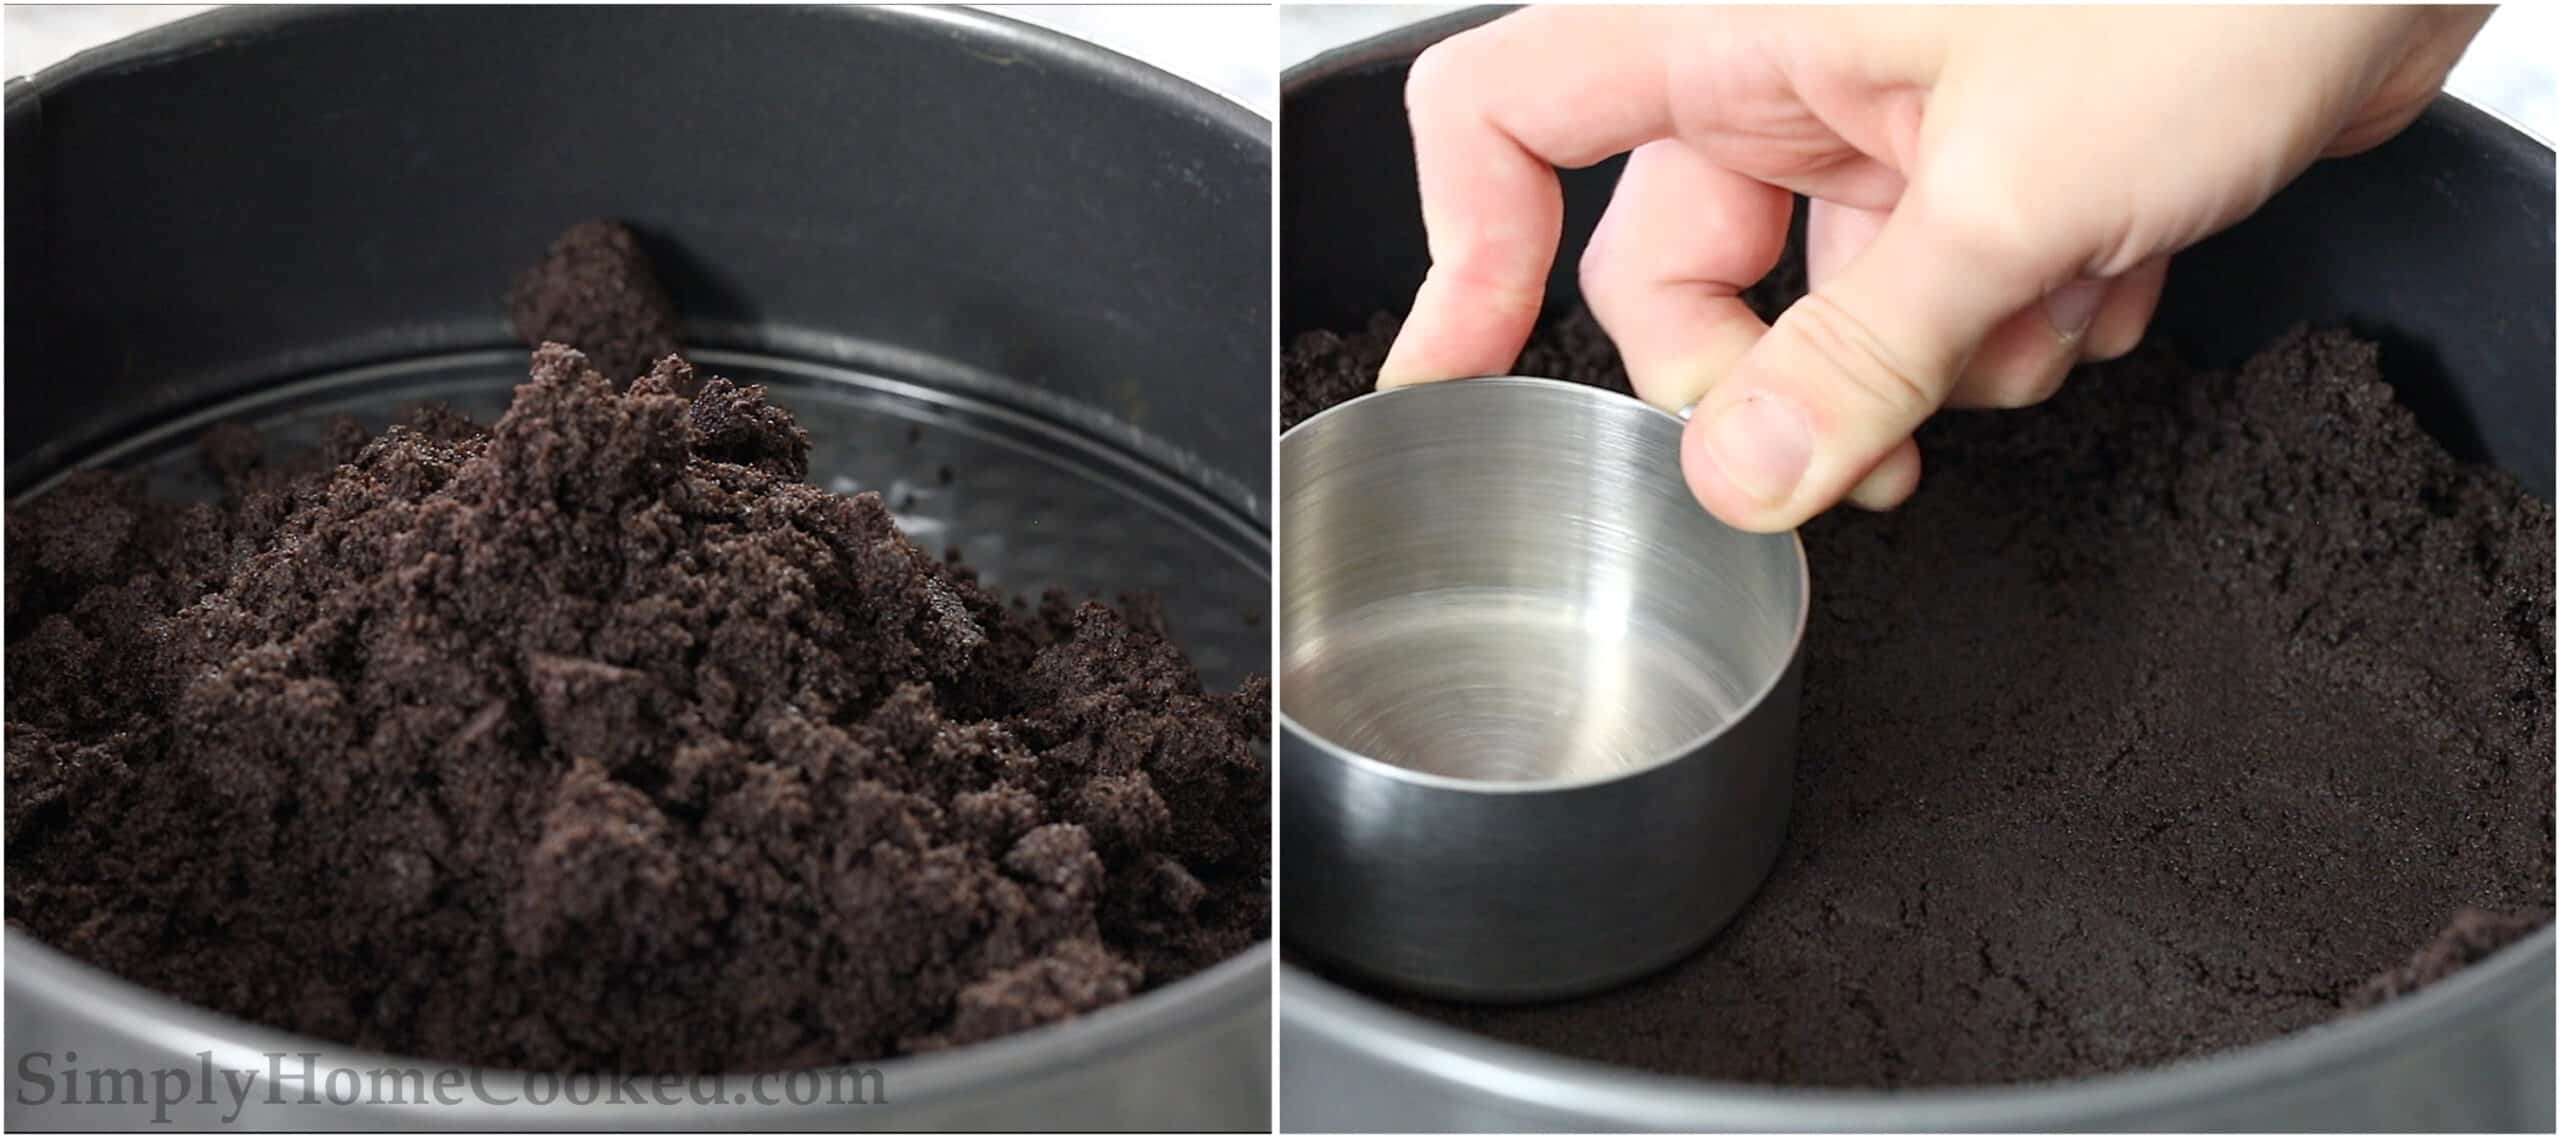 Steps to make Easy Oreo Cheesecake, including adding the cookie crumbs and butter to a springform pan and then pressing them down to the bottom and sides with a measuring cup to form the crust.